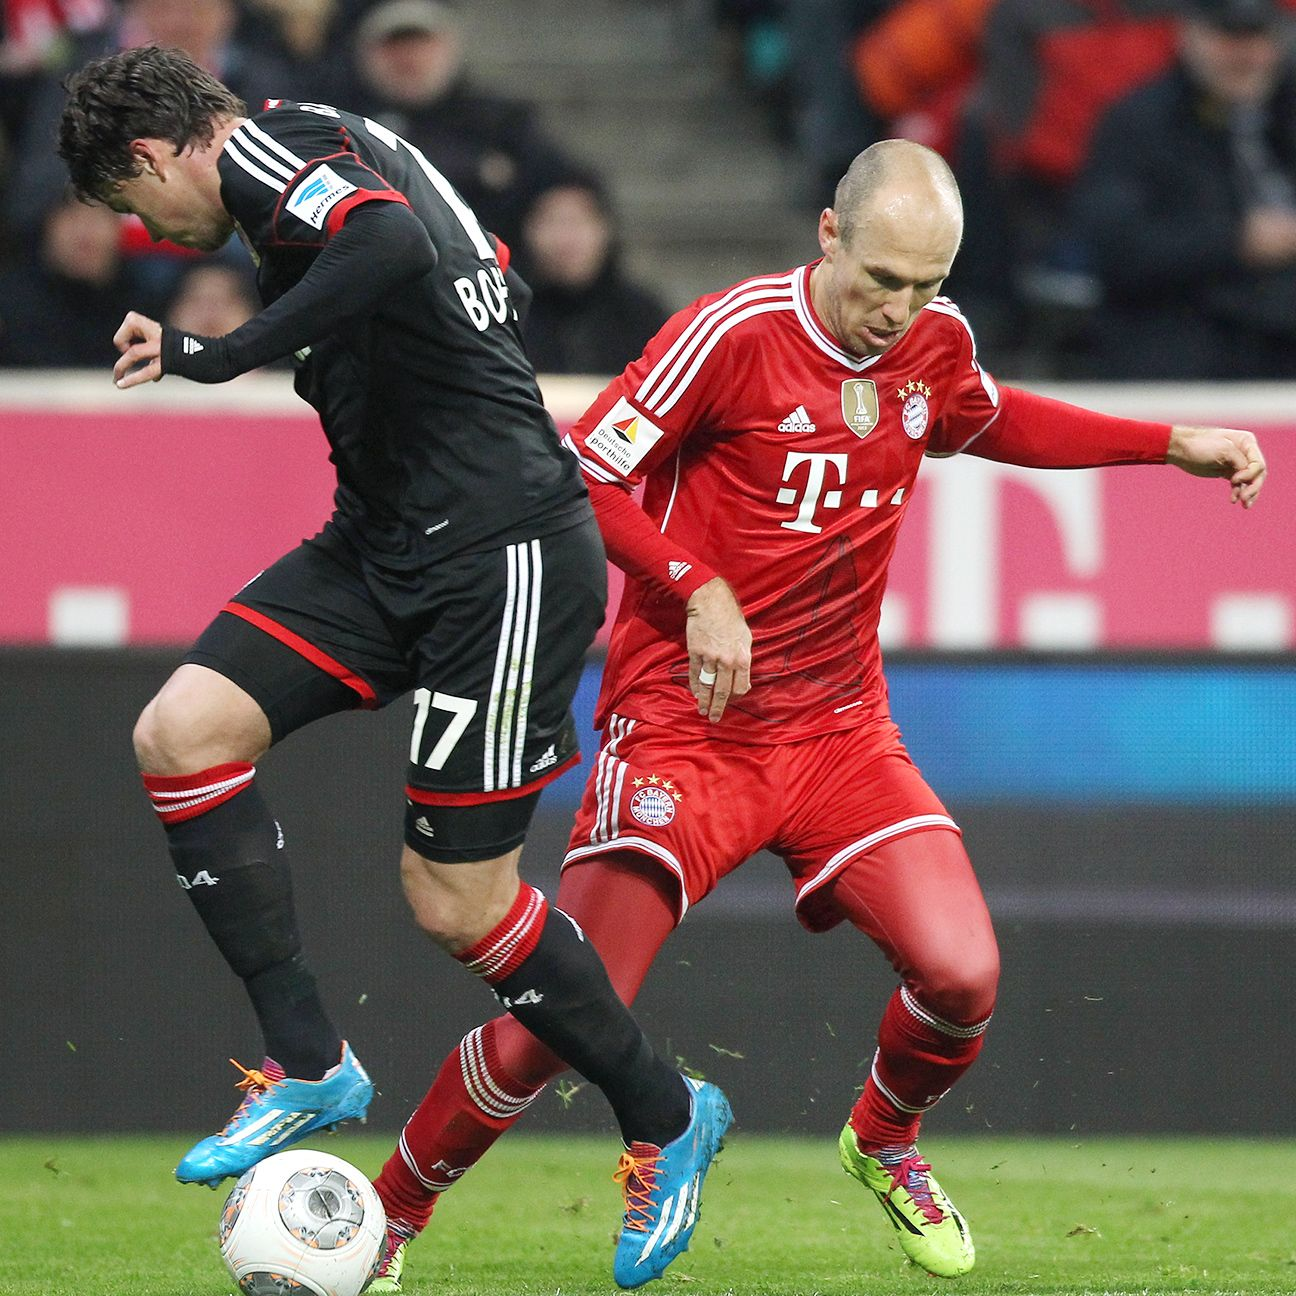 History shows that Bayer Leverkusen can be a tough foe in Munich for Arjen Robben and Bayern.